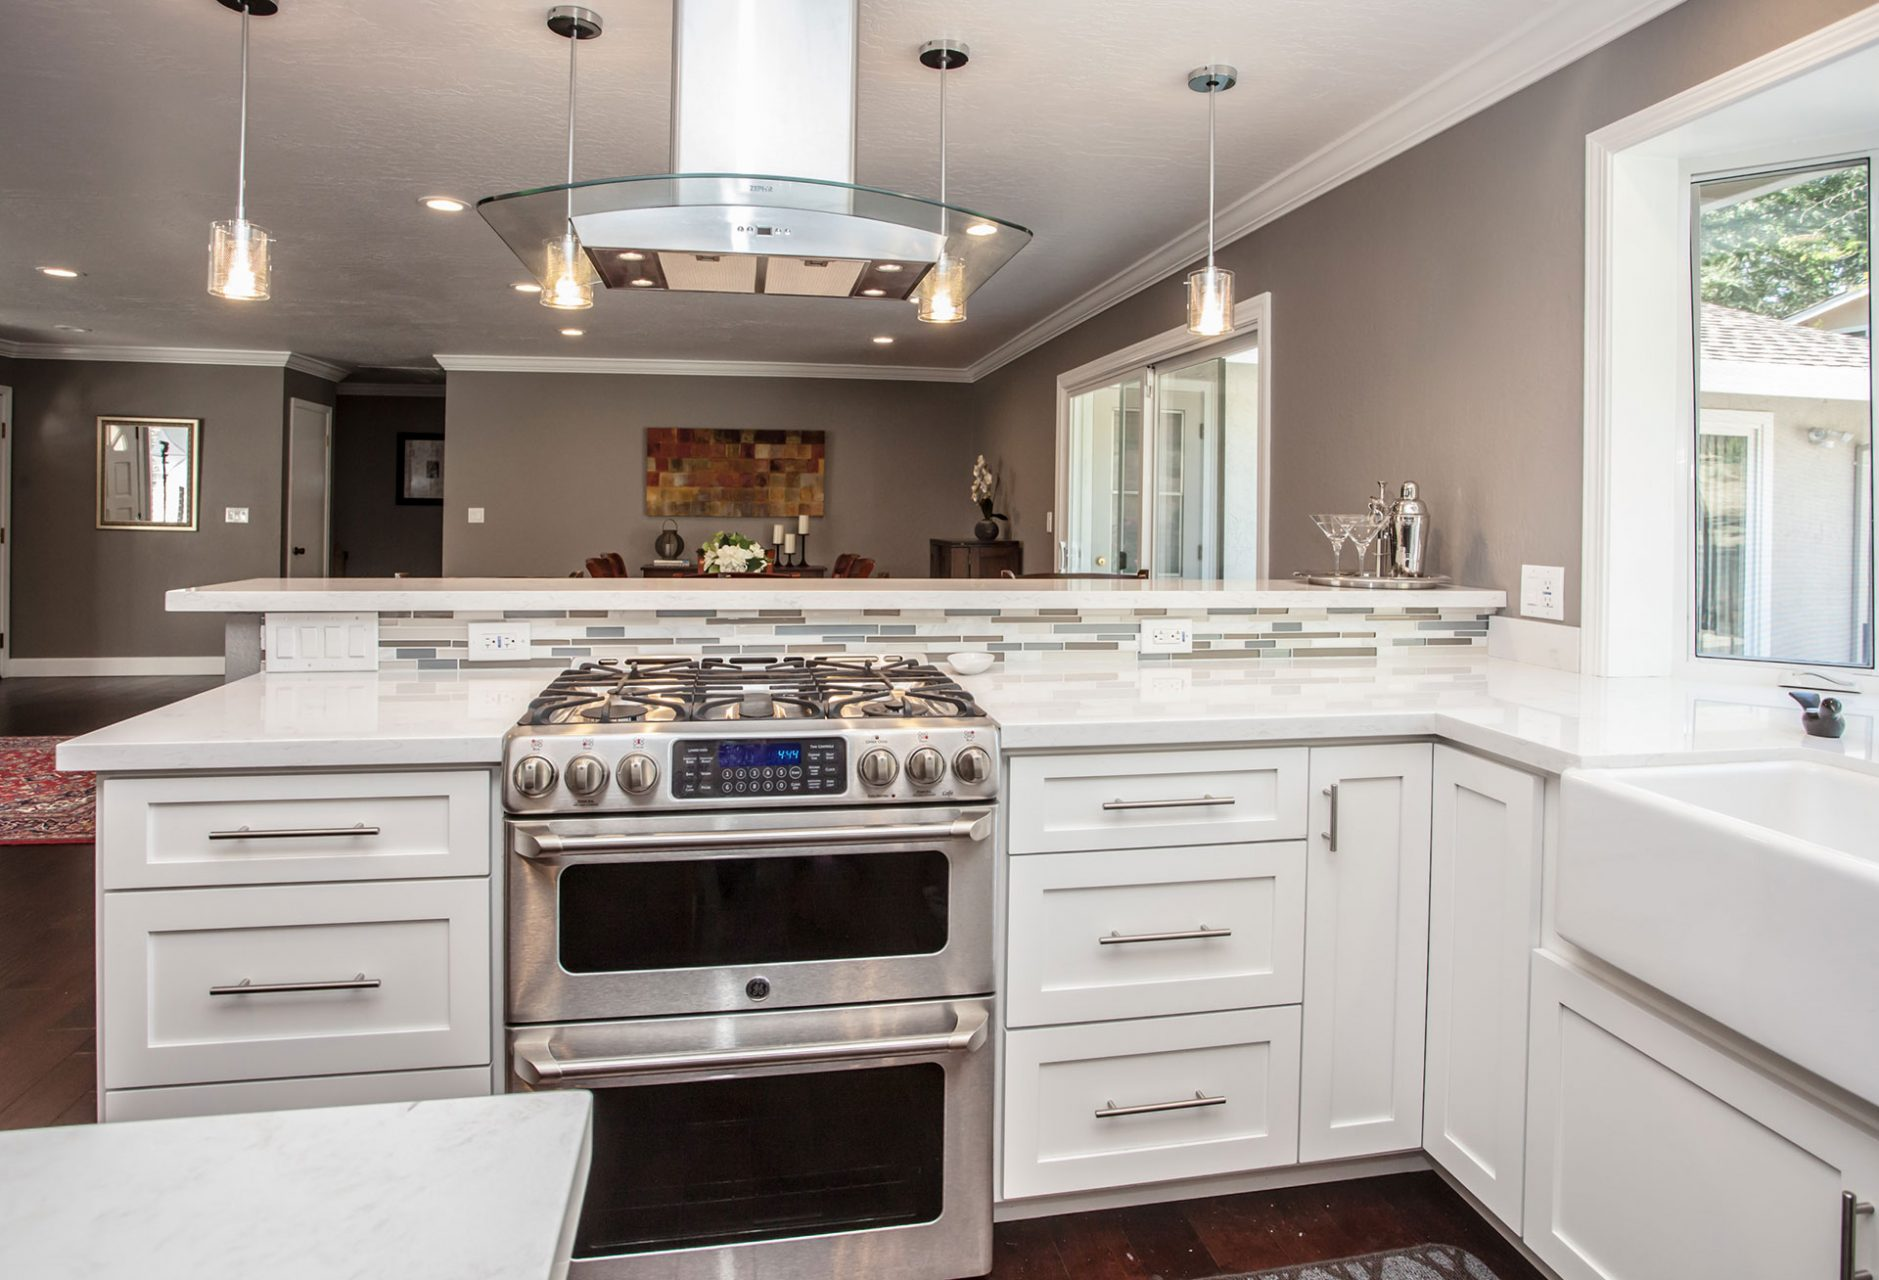 white counter tops and cabinets